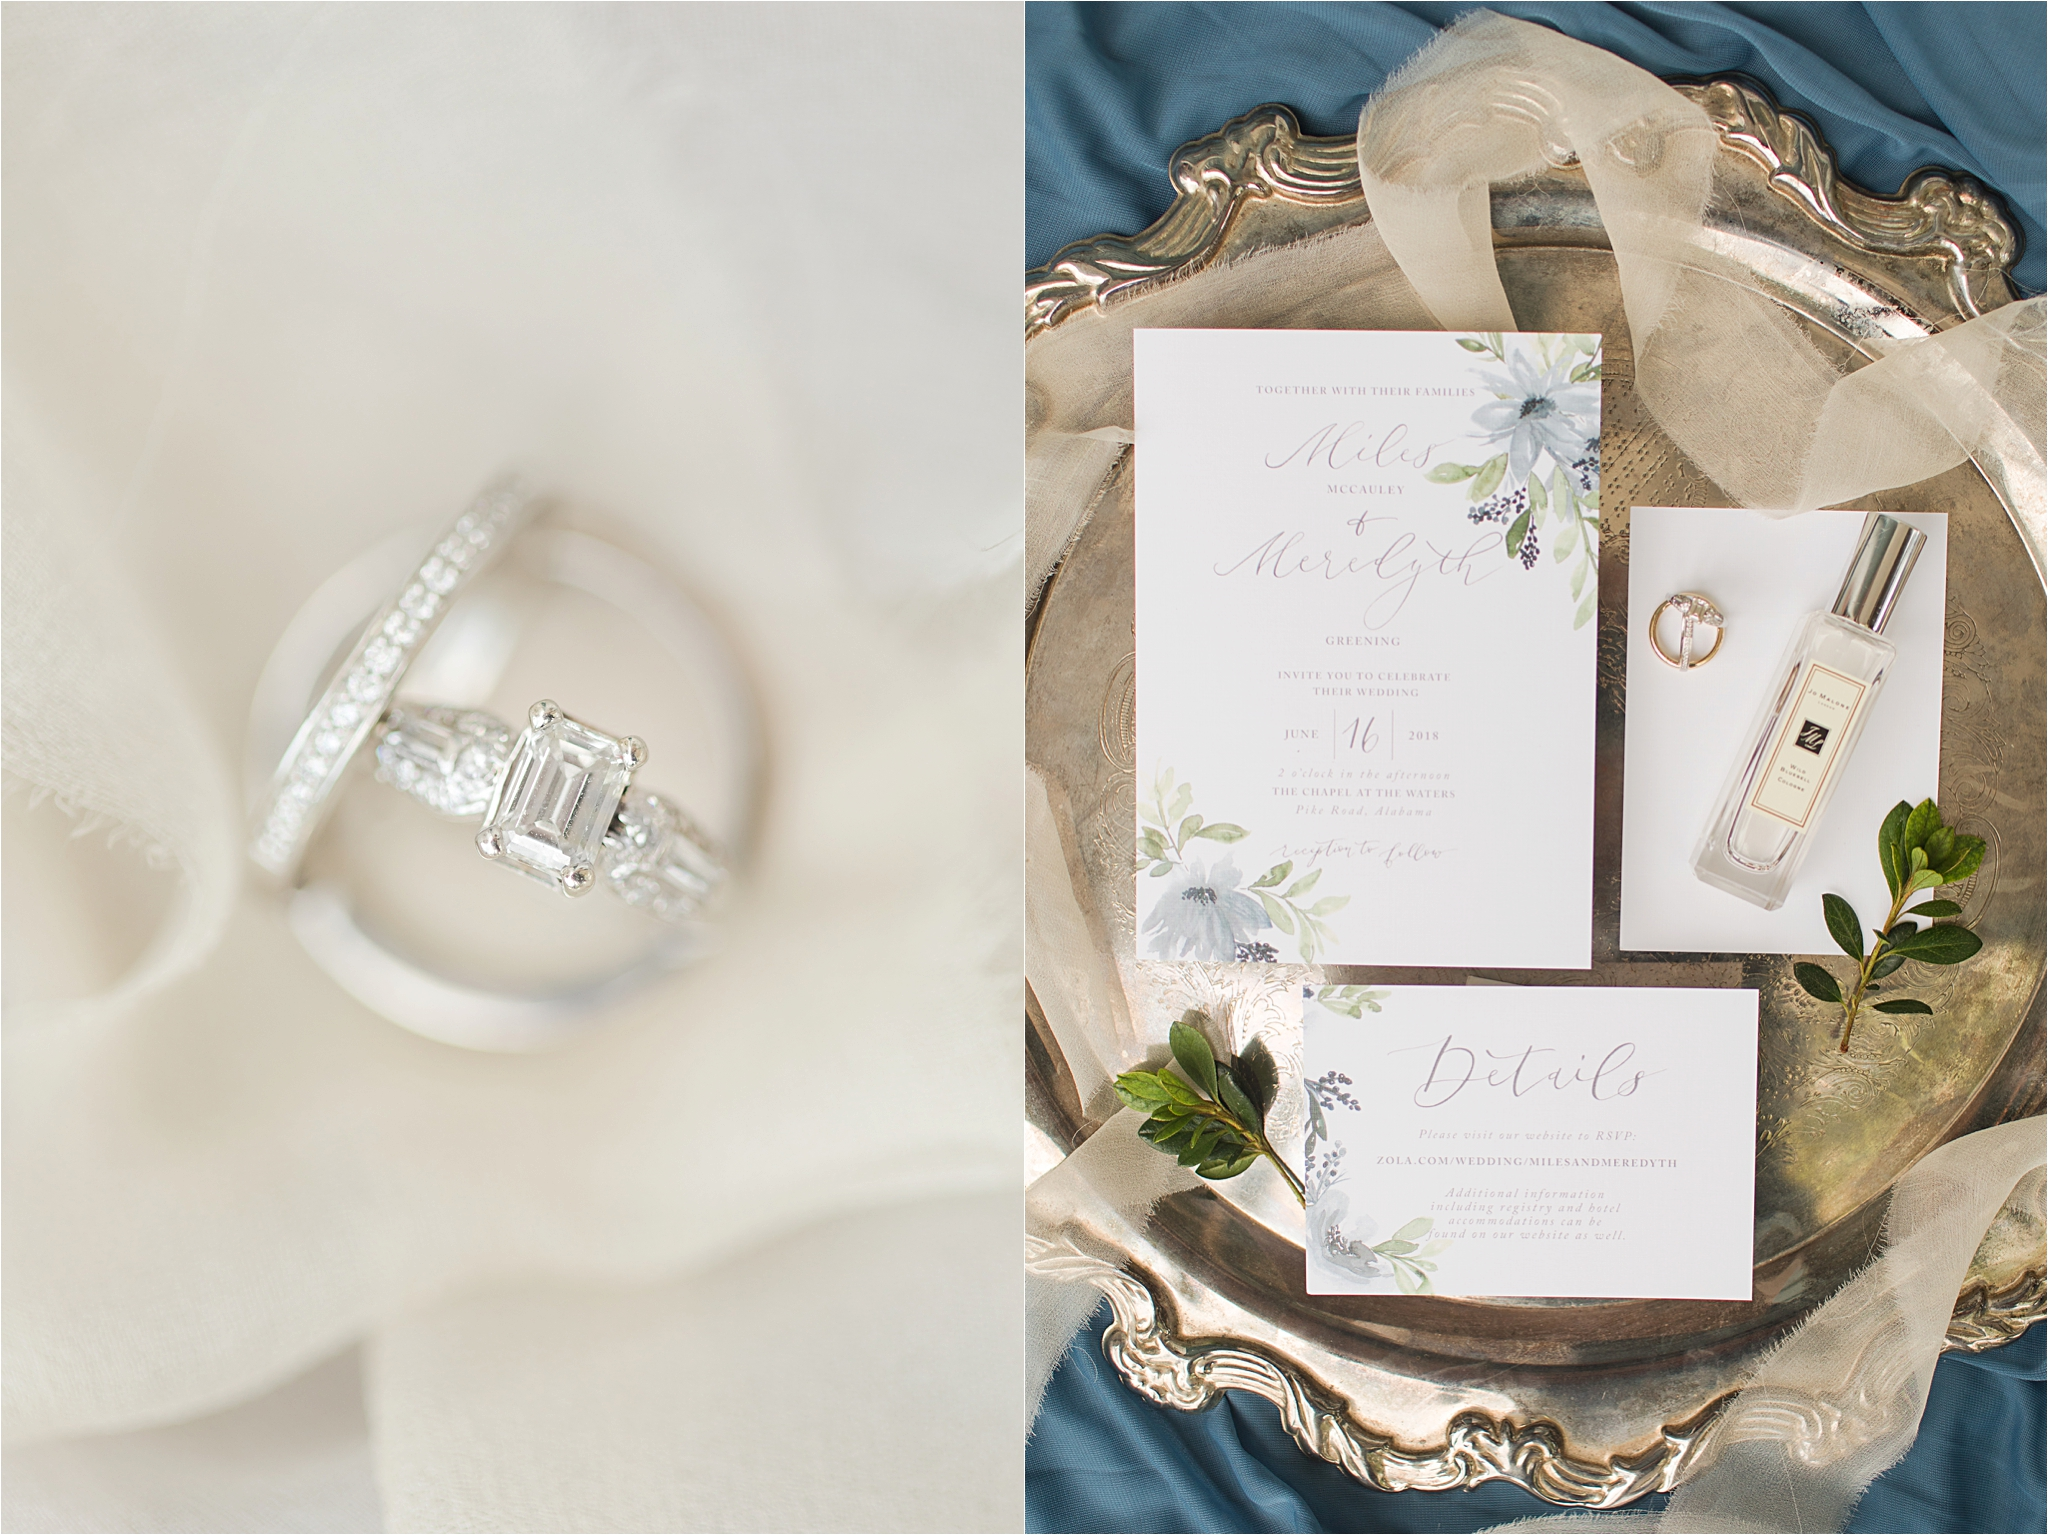 Wedding Details-Pastel Themed Wedding-The Chapel at the Waters-Montgomery Alabama Photographer-Miles & Meredyth-Alabama Bride-Wedding Rings-Blue Themed Wedding